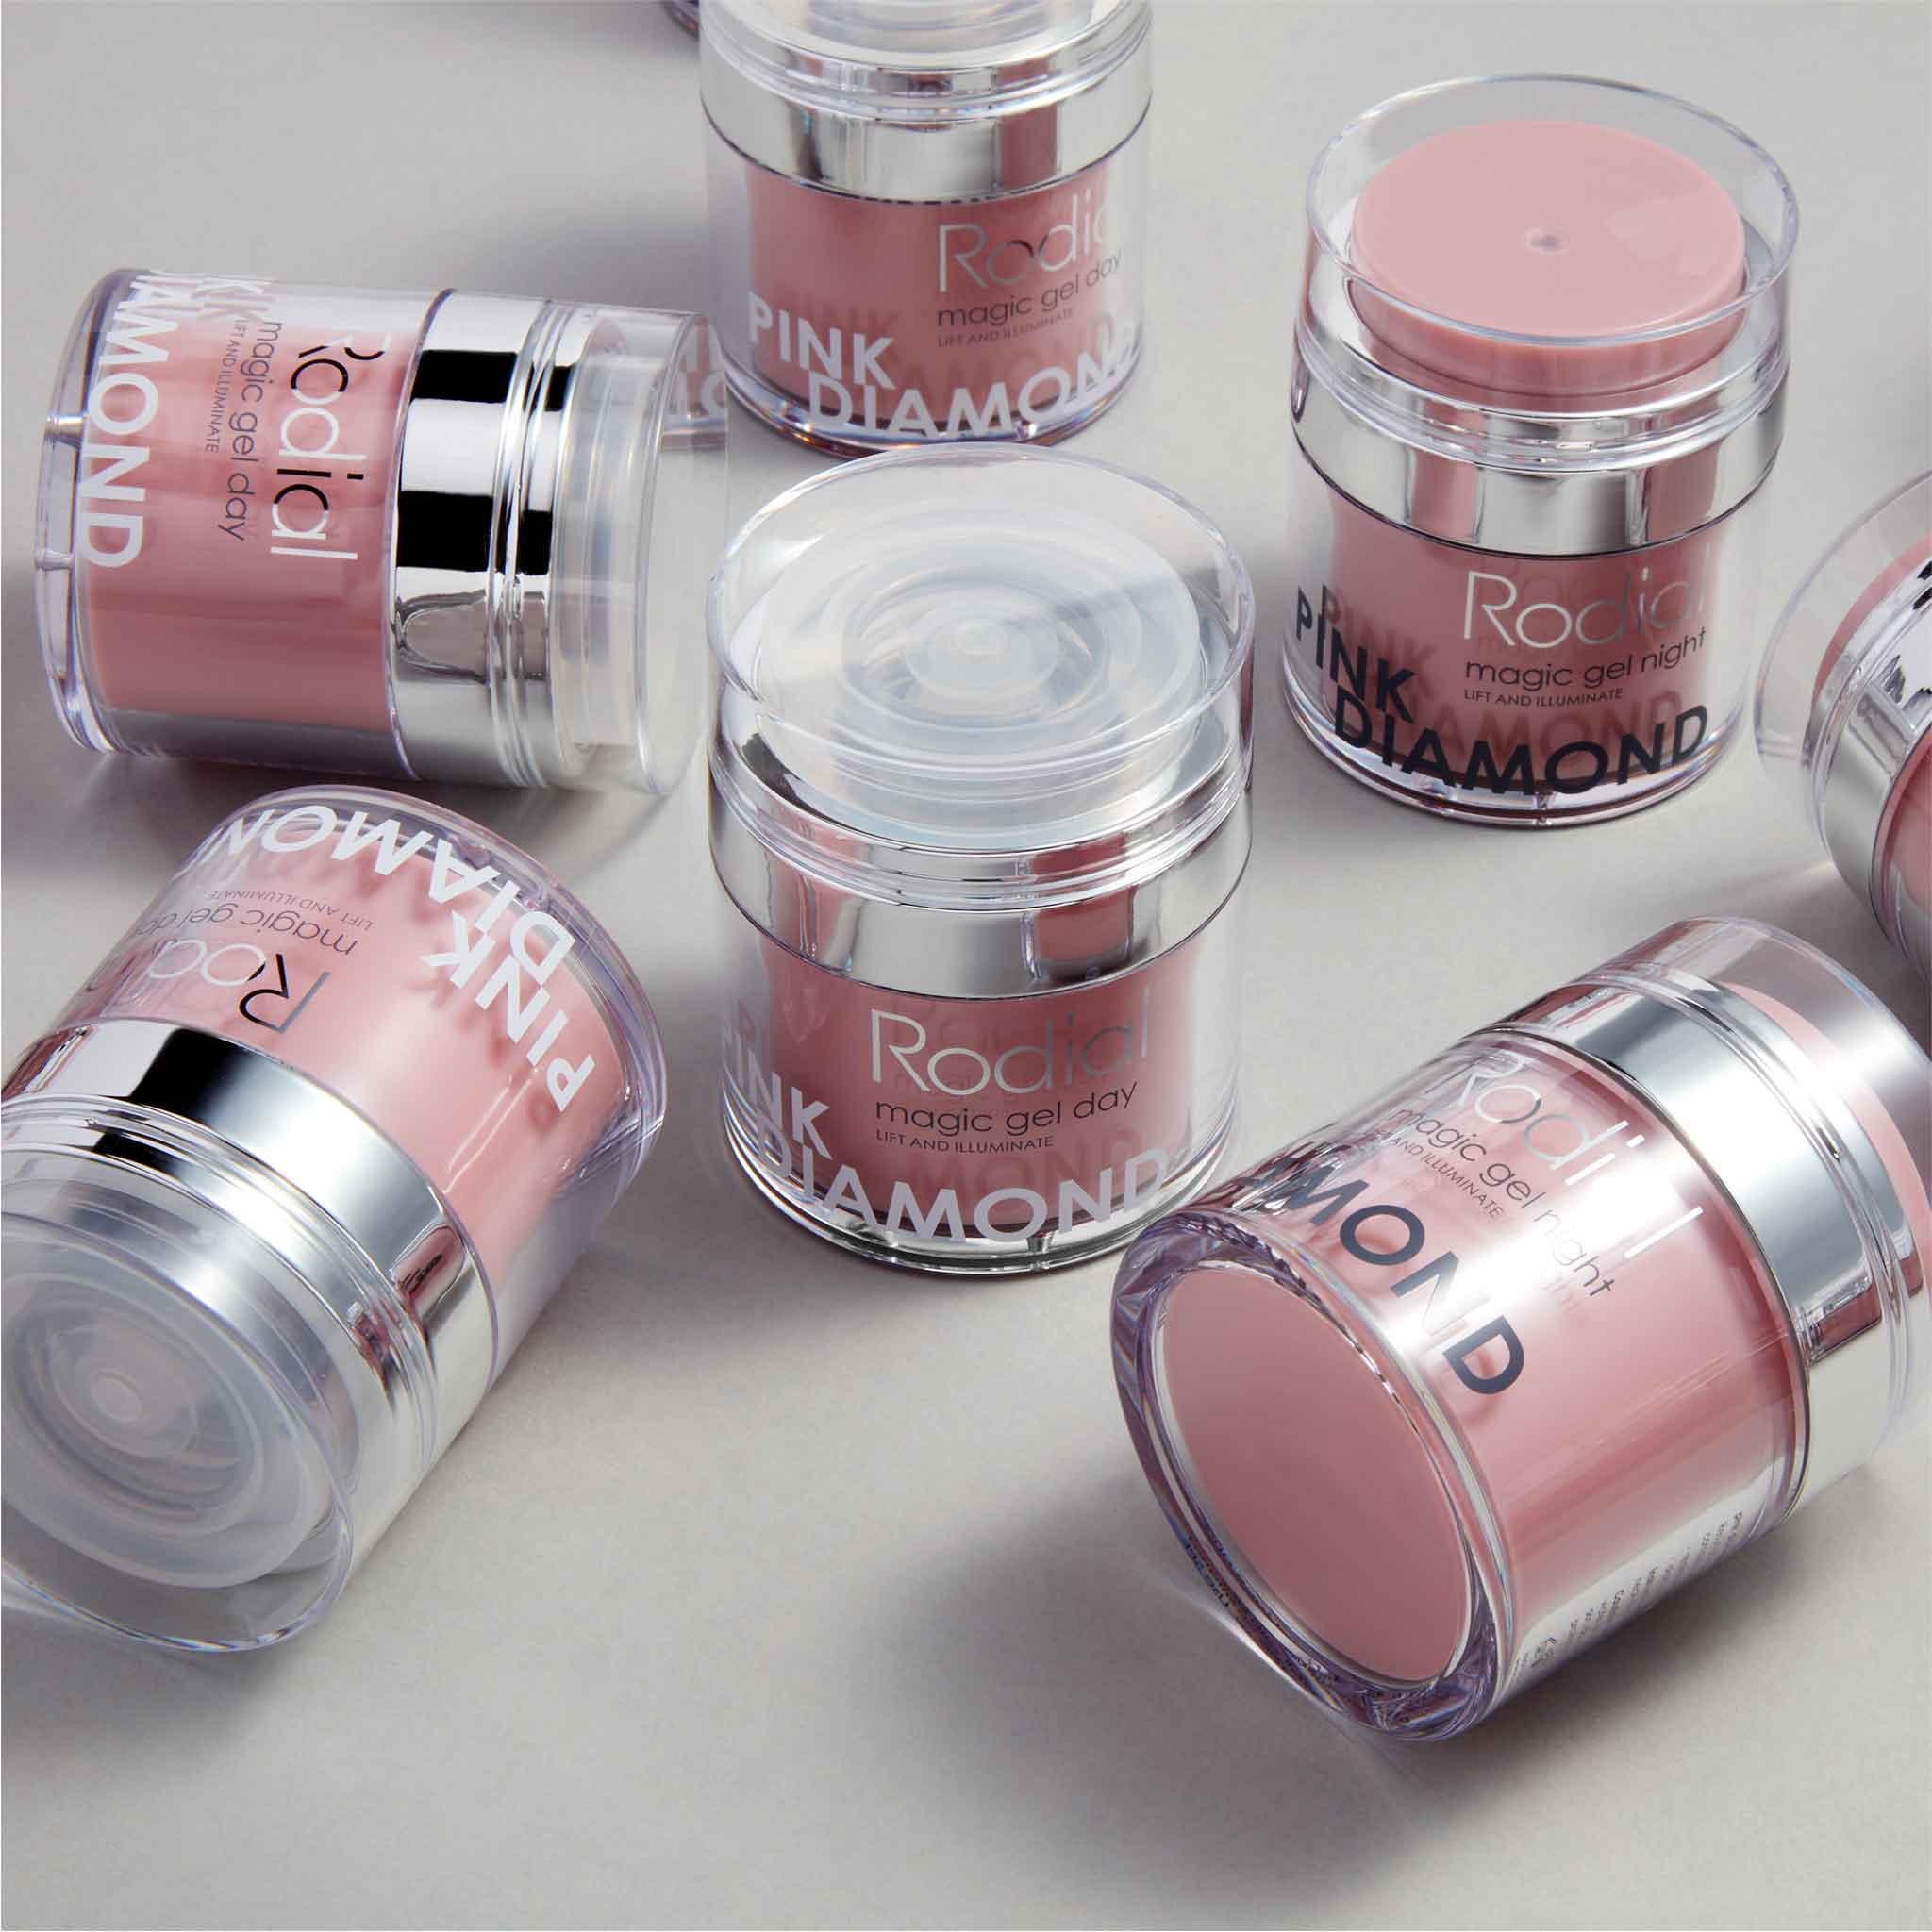 Rodial Pink Diamond Magic Gel Night